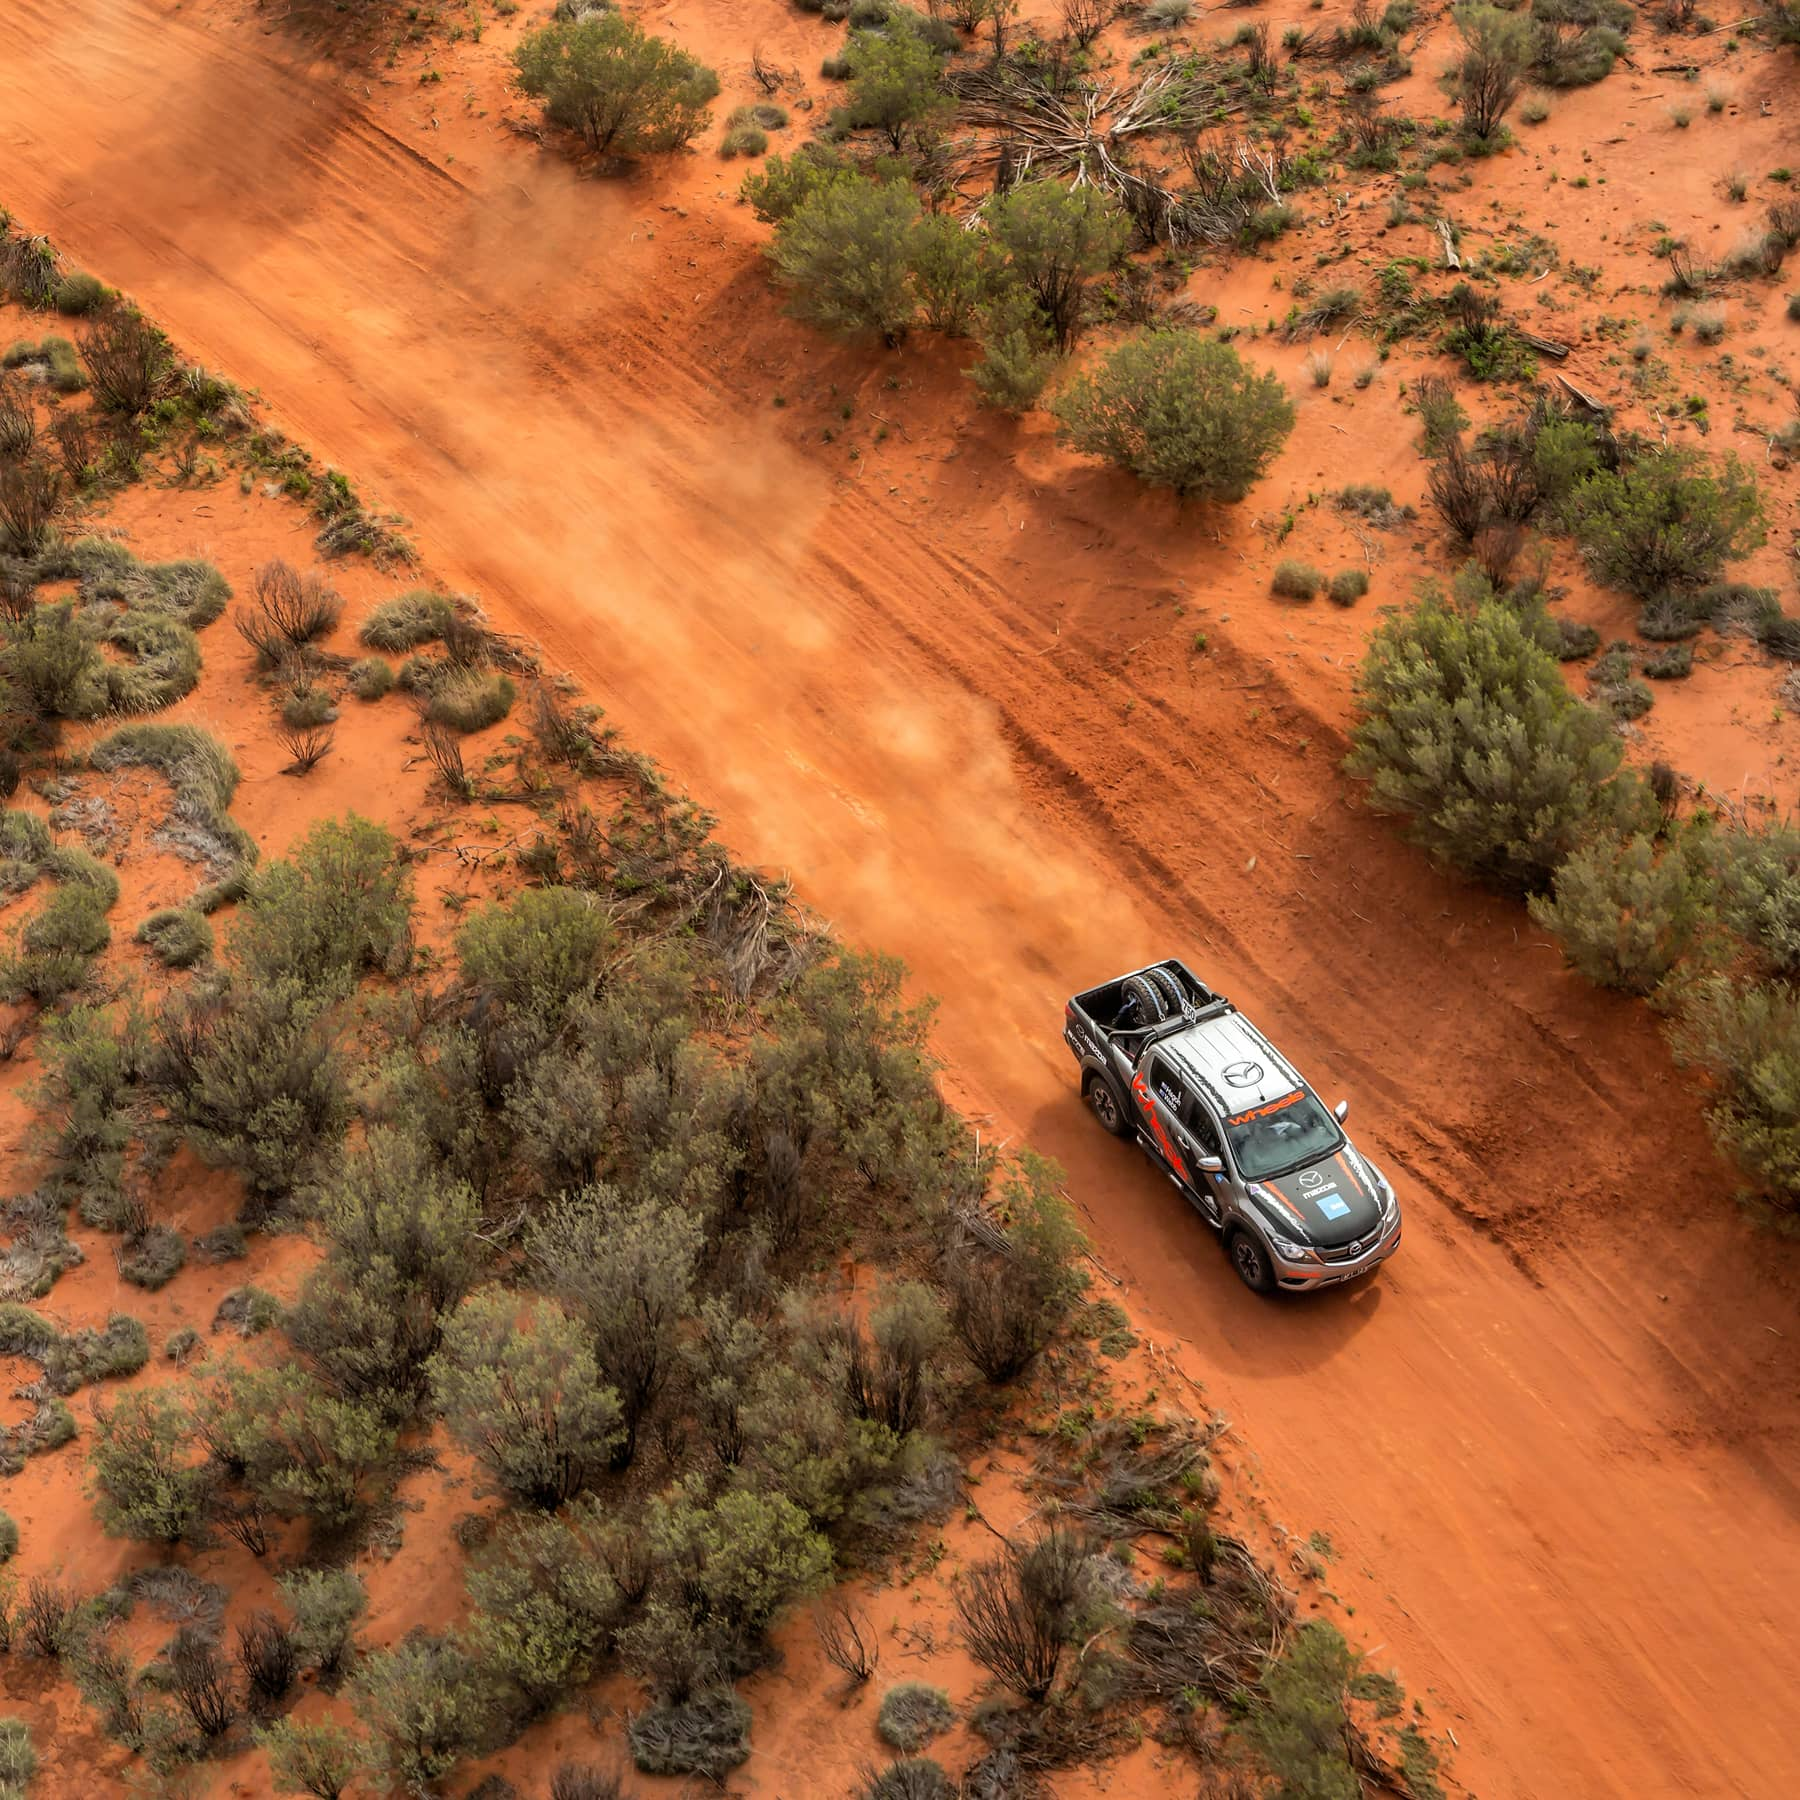 Where Is The Closest Mazda Dealership: The Toughest 4x4 & 4x2 Work Ute